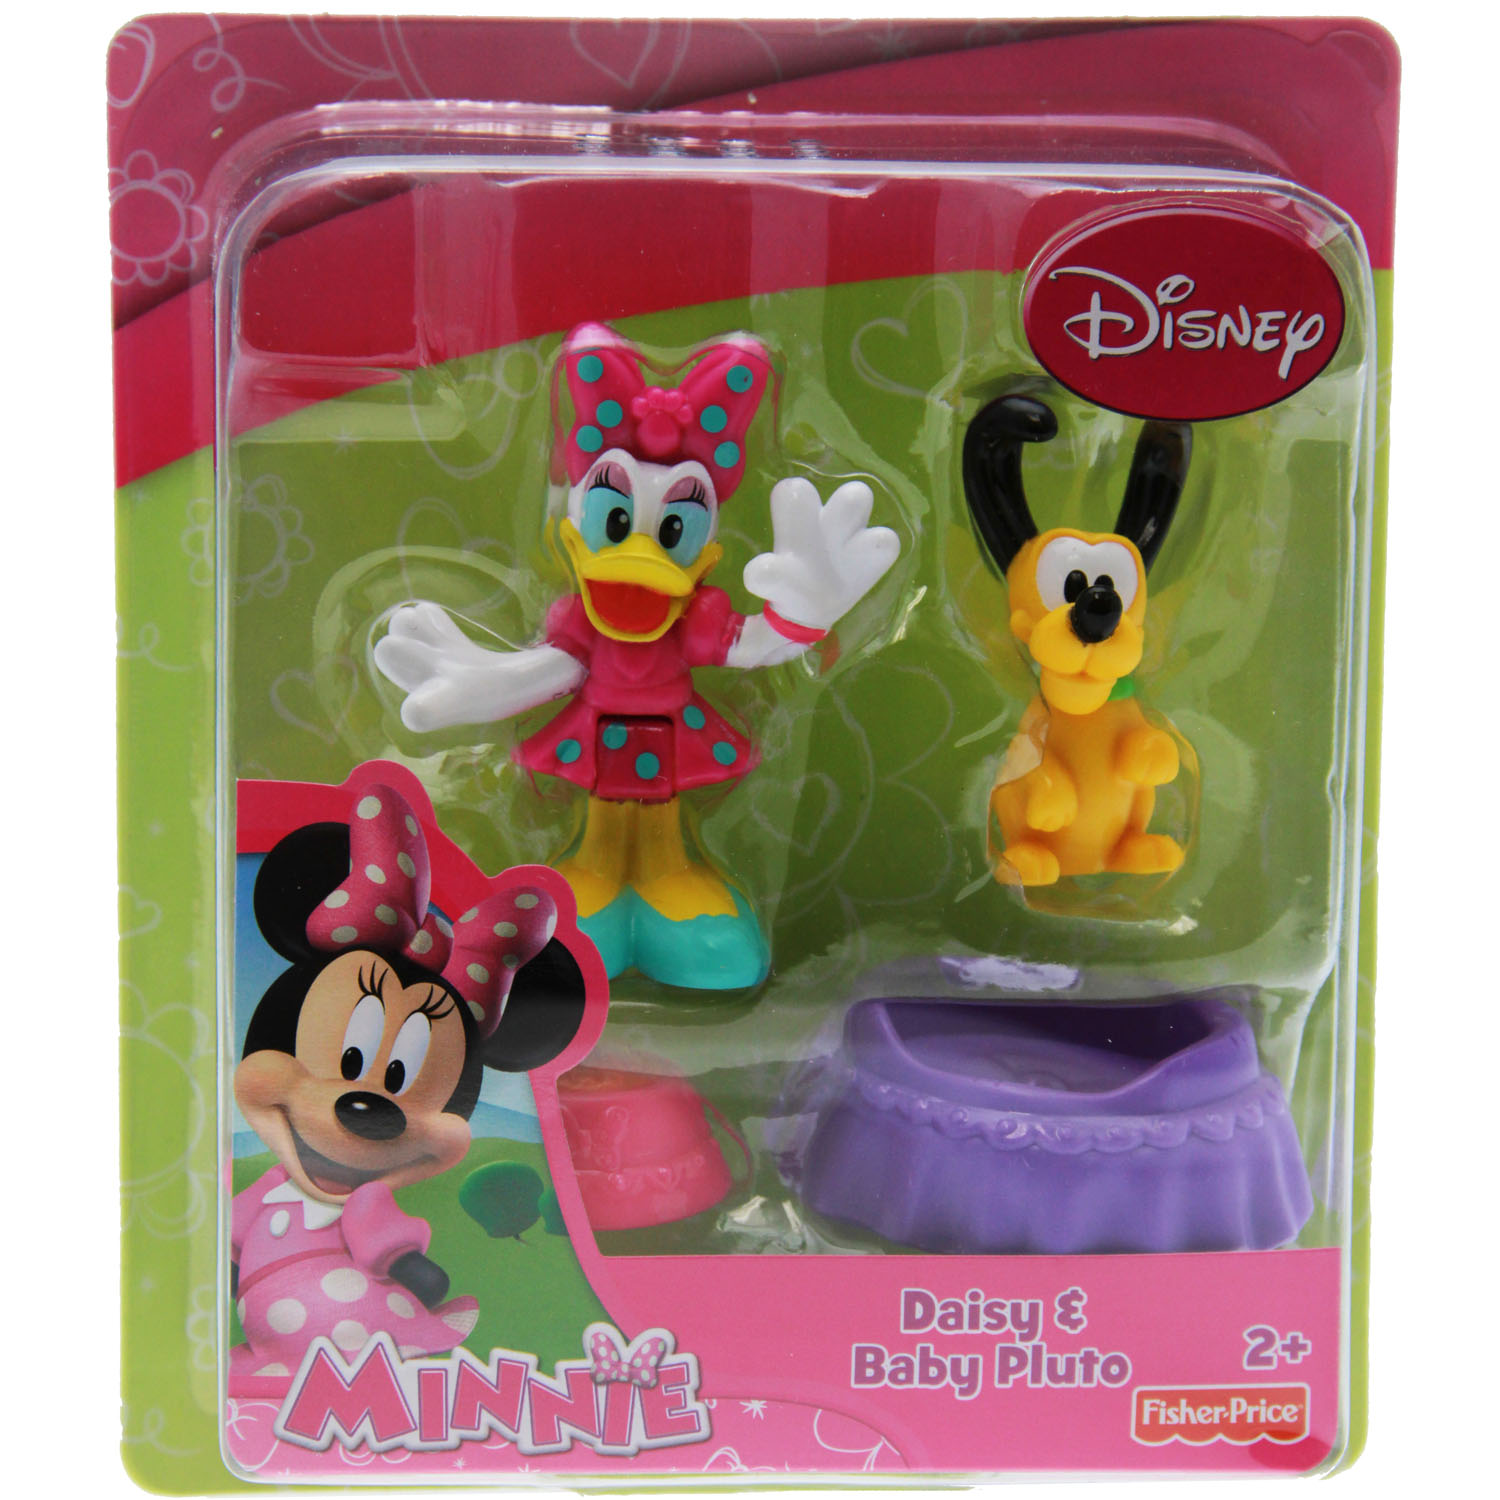 Mickey Mouse Clubhouse Toys - Daisy and Pluto at ToyStop